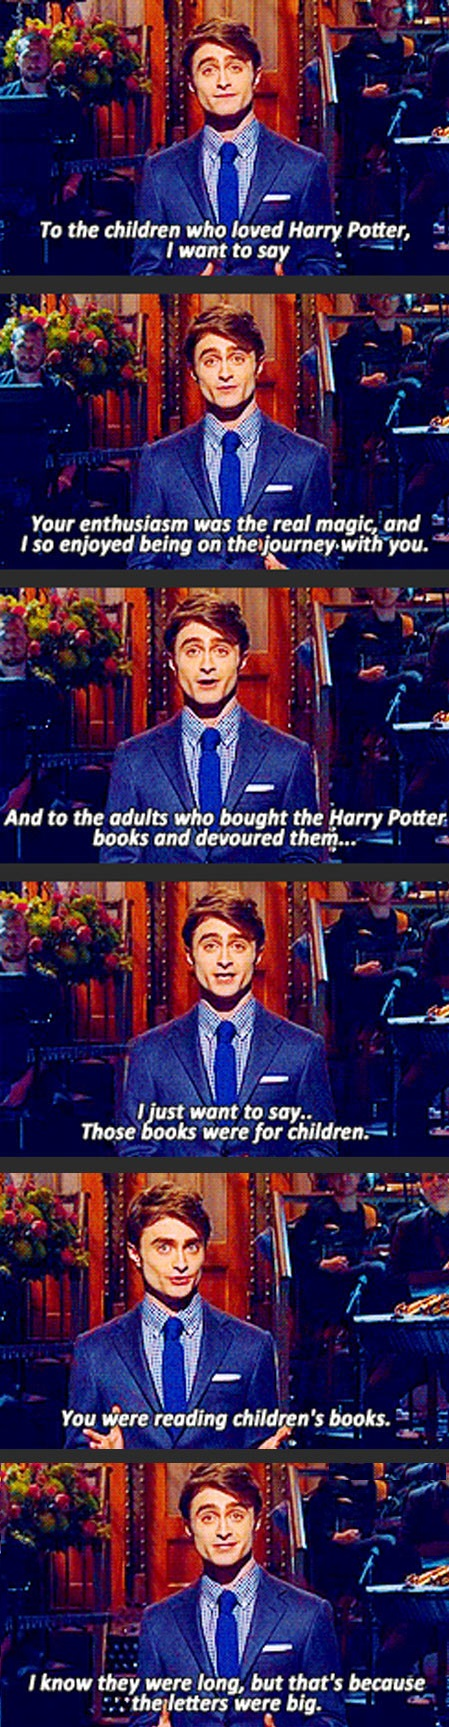 funny-picture-harry-potter-adults-kids-daniel-radcliffe